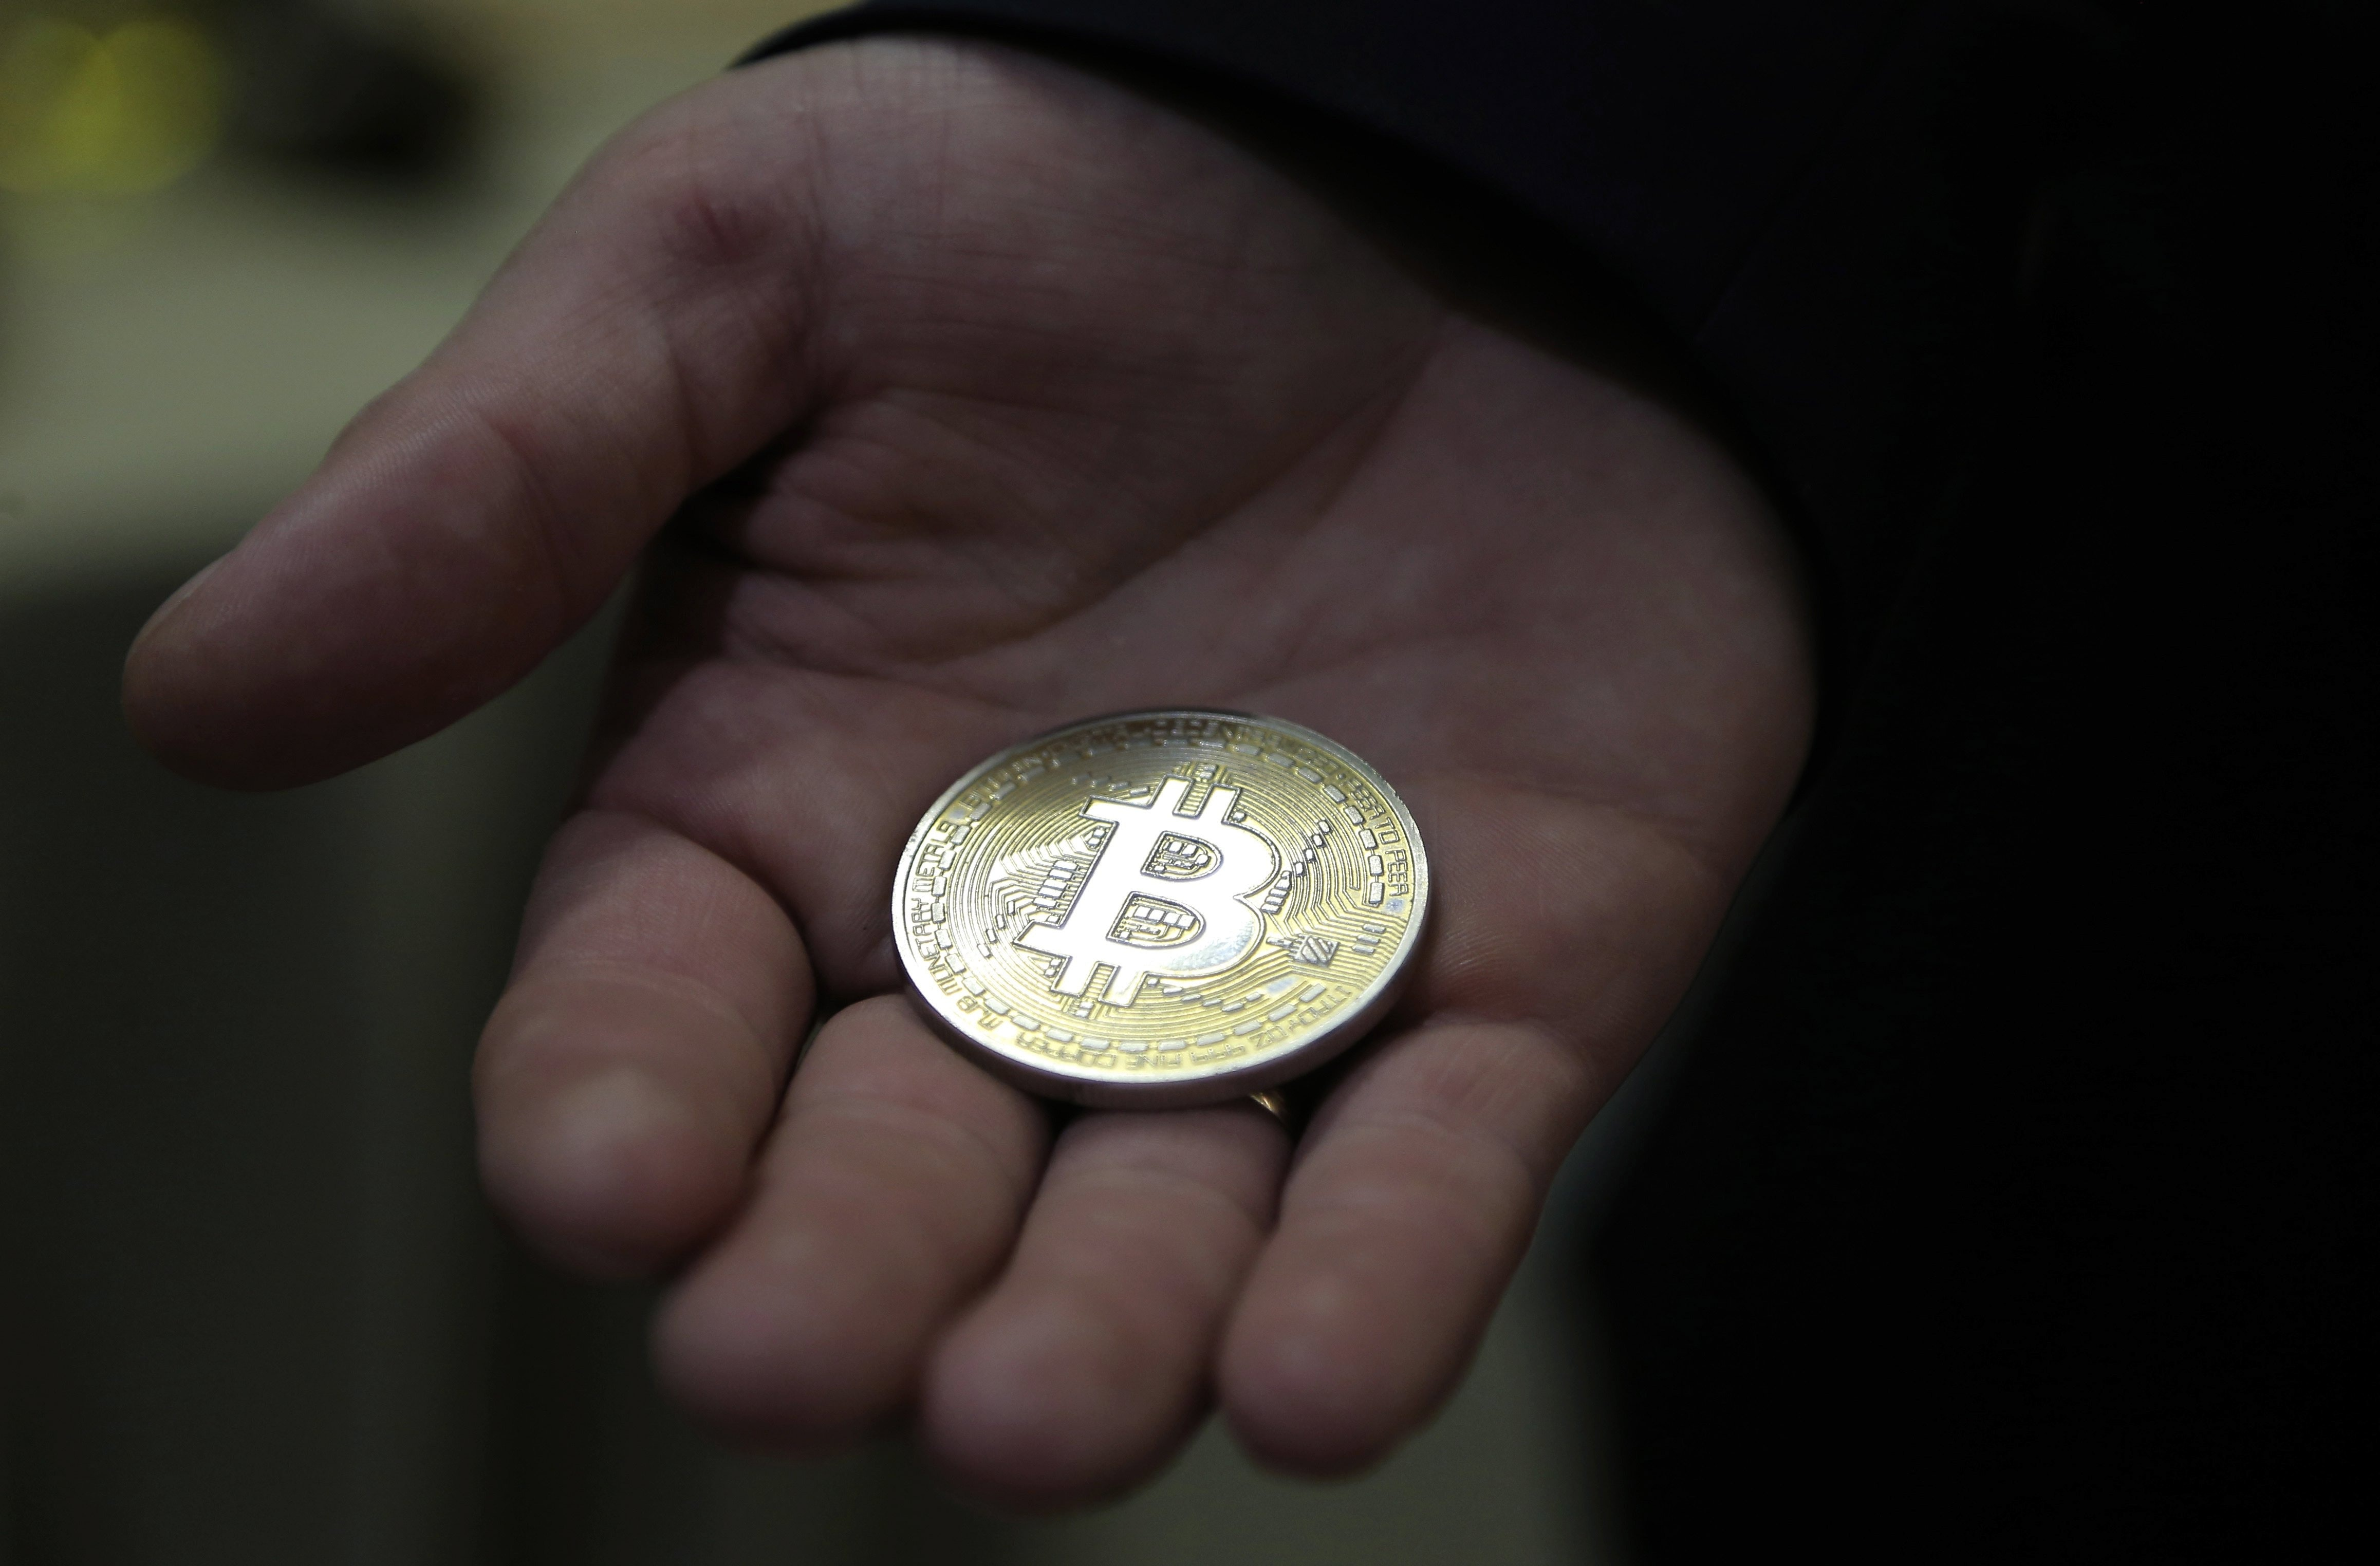 Bitcoin investors should be taxed like any other investor